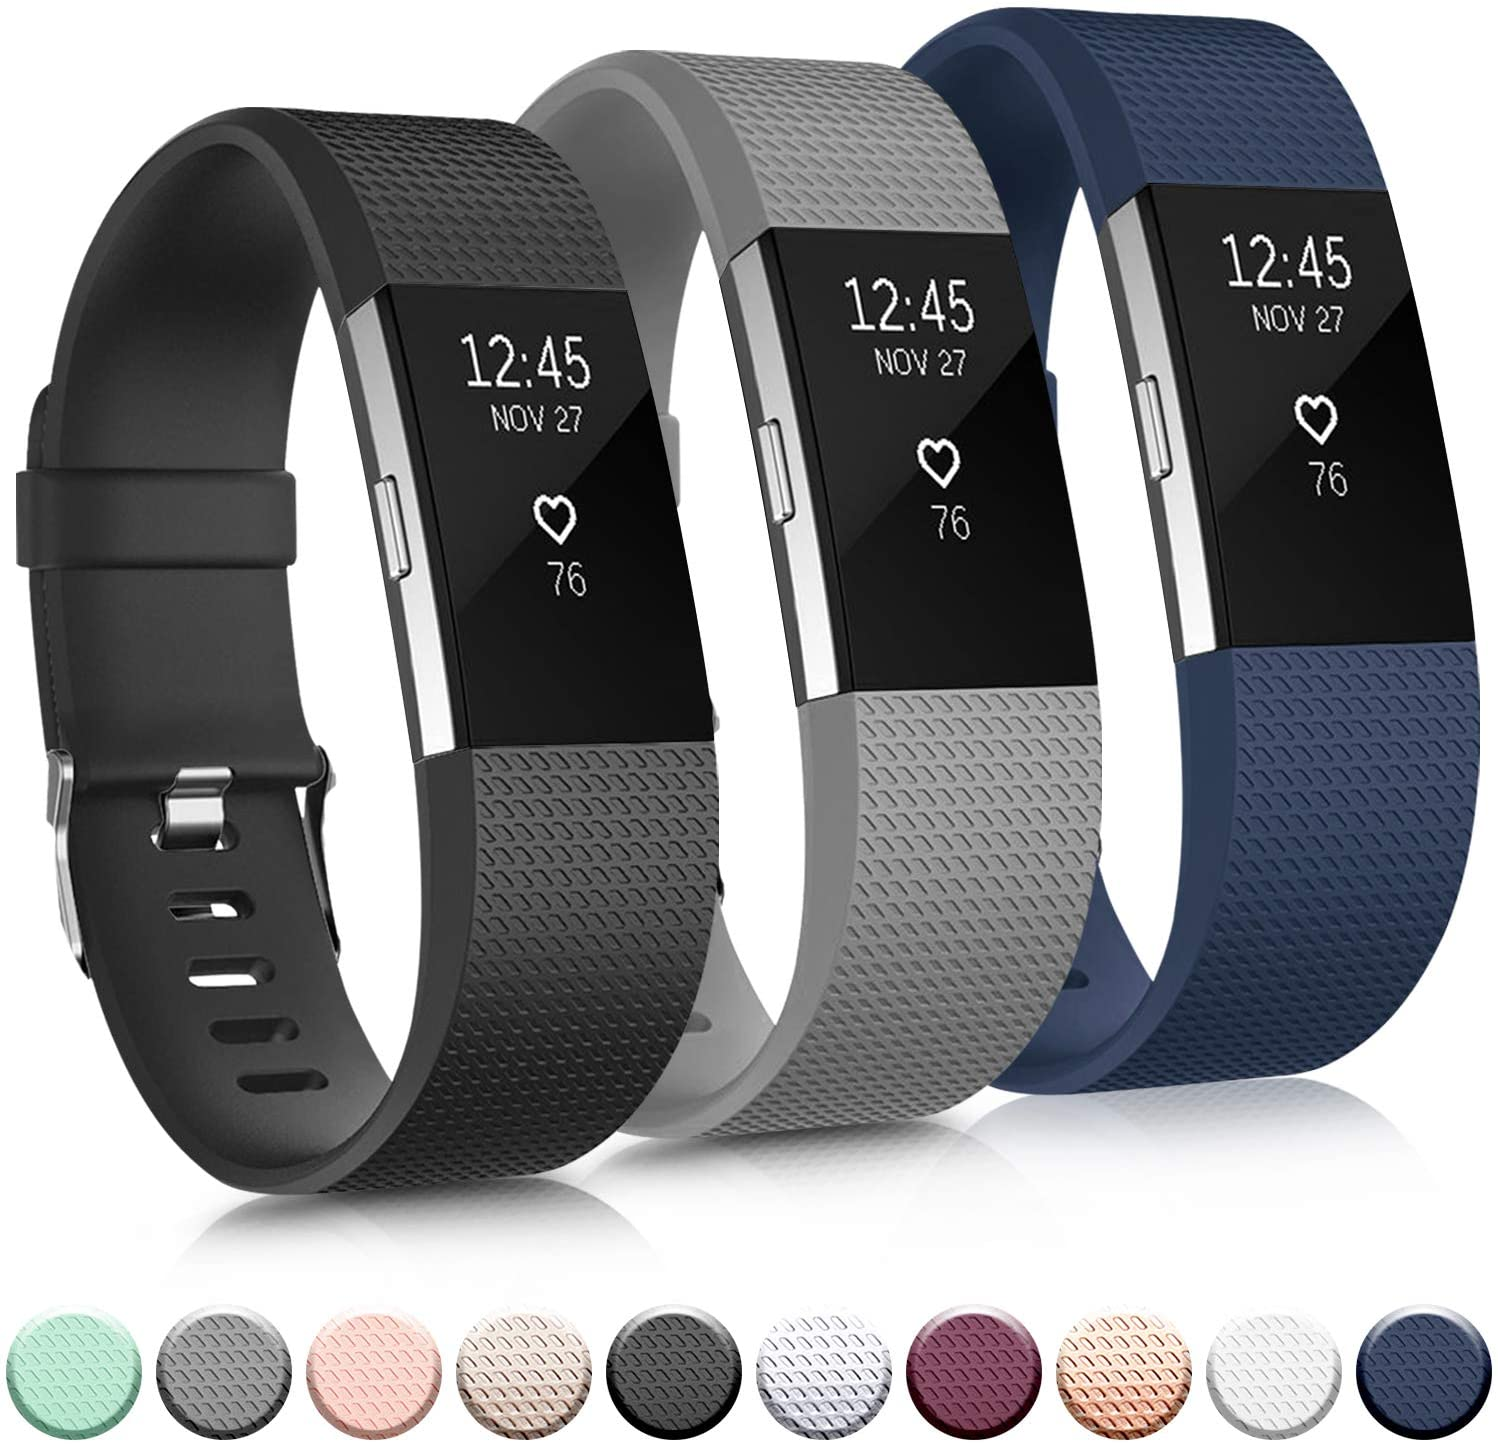 Pack 3 Replacement Bands Compatible for Fitbit Charge 2 Bands, Adjustable Accessory Soft Silicone Sport Wristband for Women Men (Large, Black+Grey+Navy Blue)